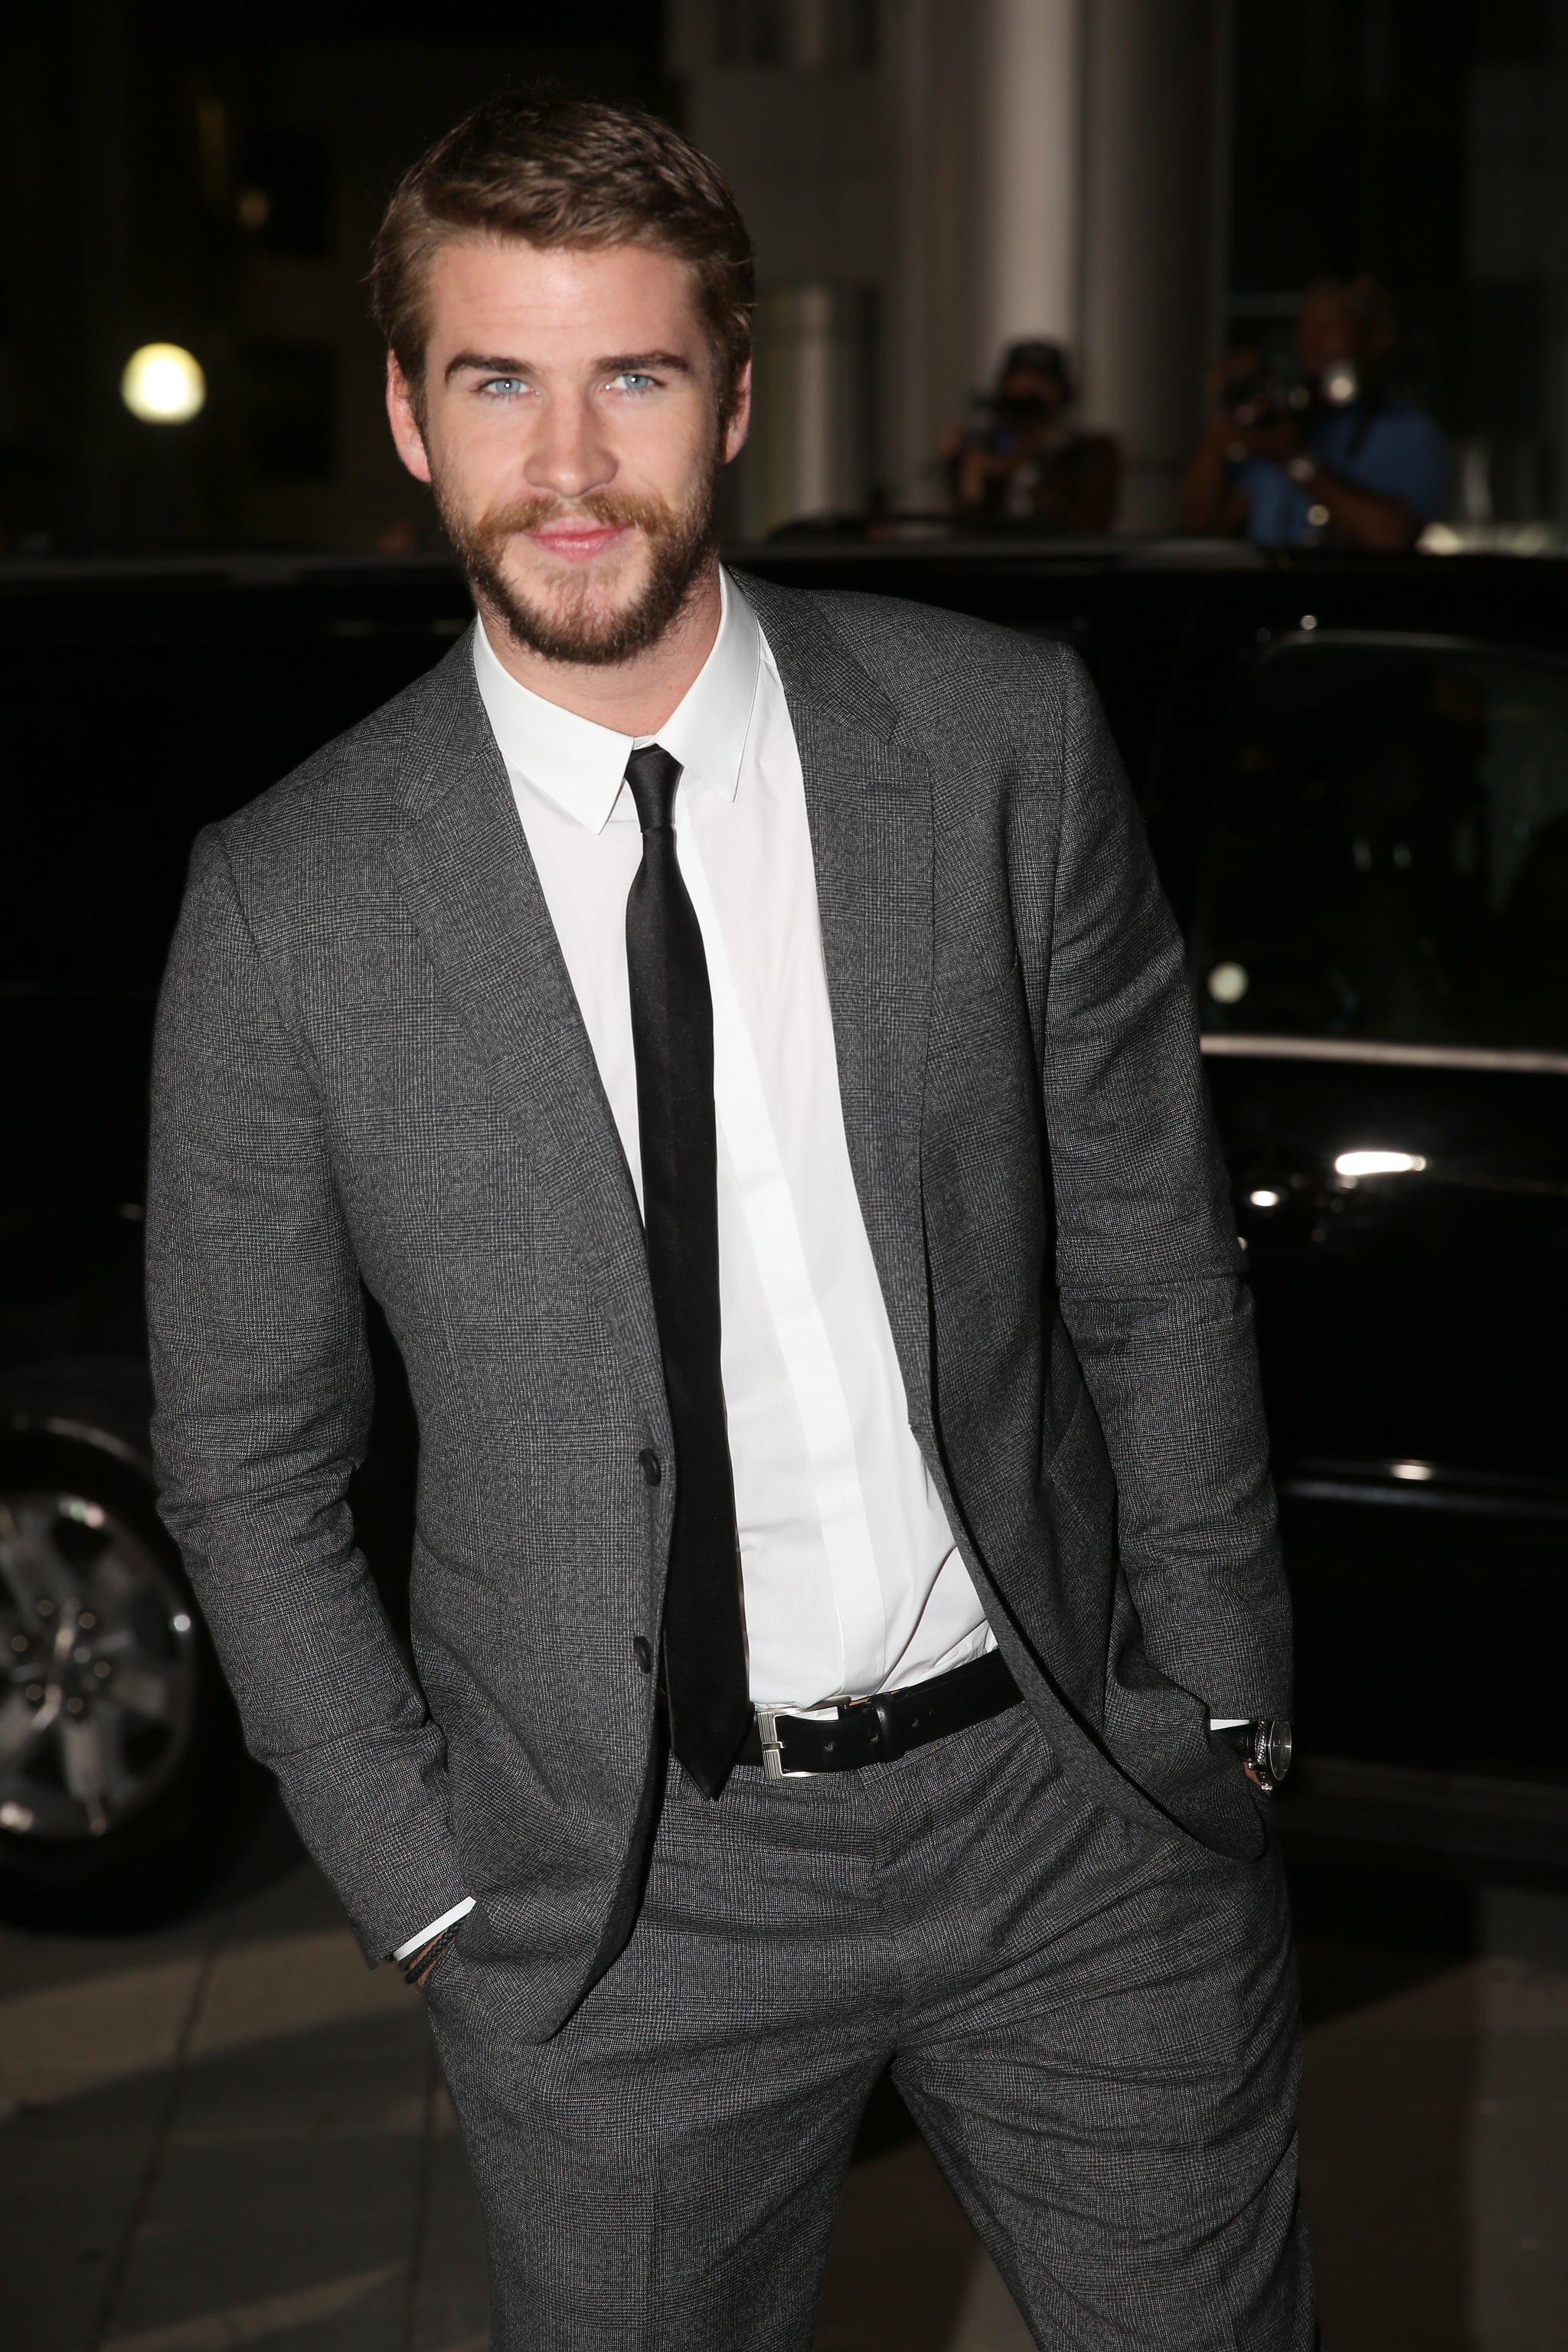 Liam Hemsworth supported his brother's premiere.